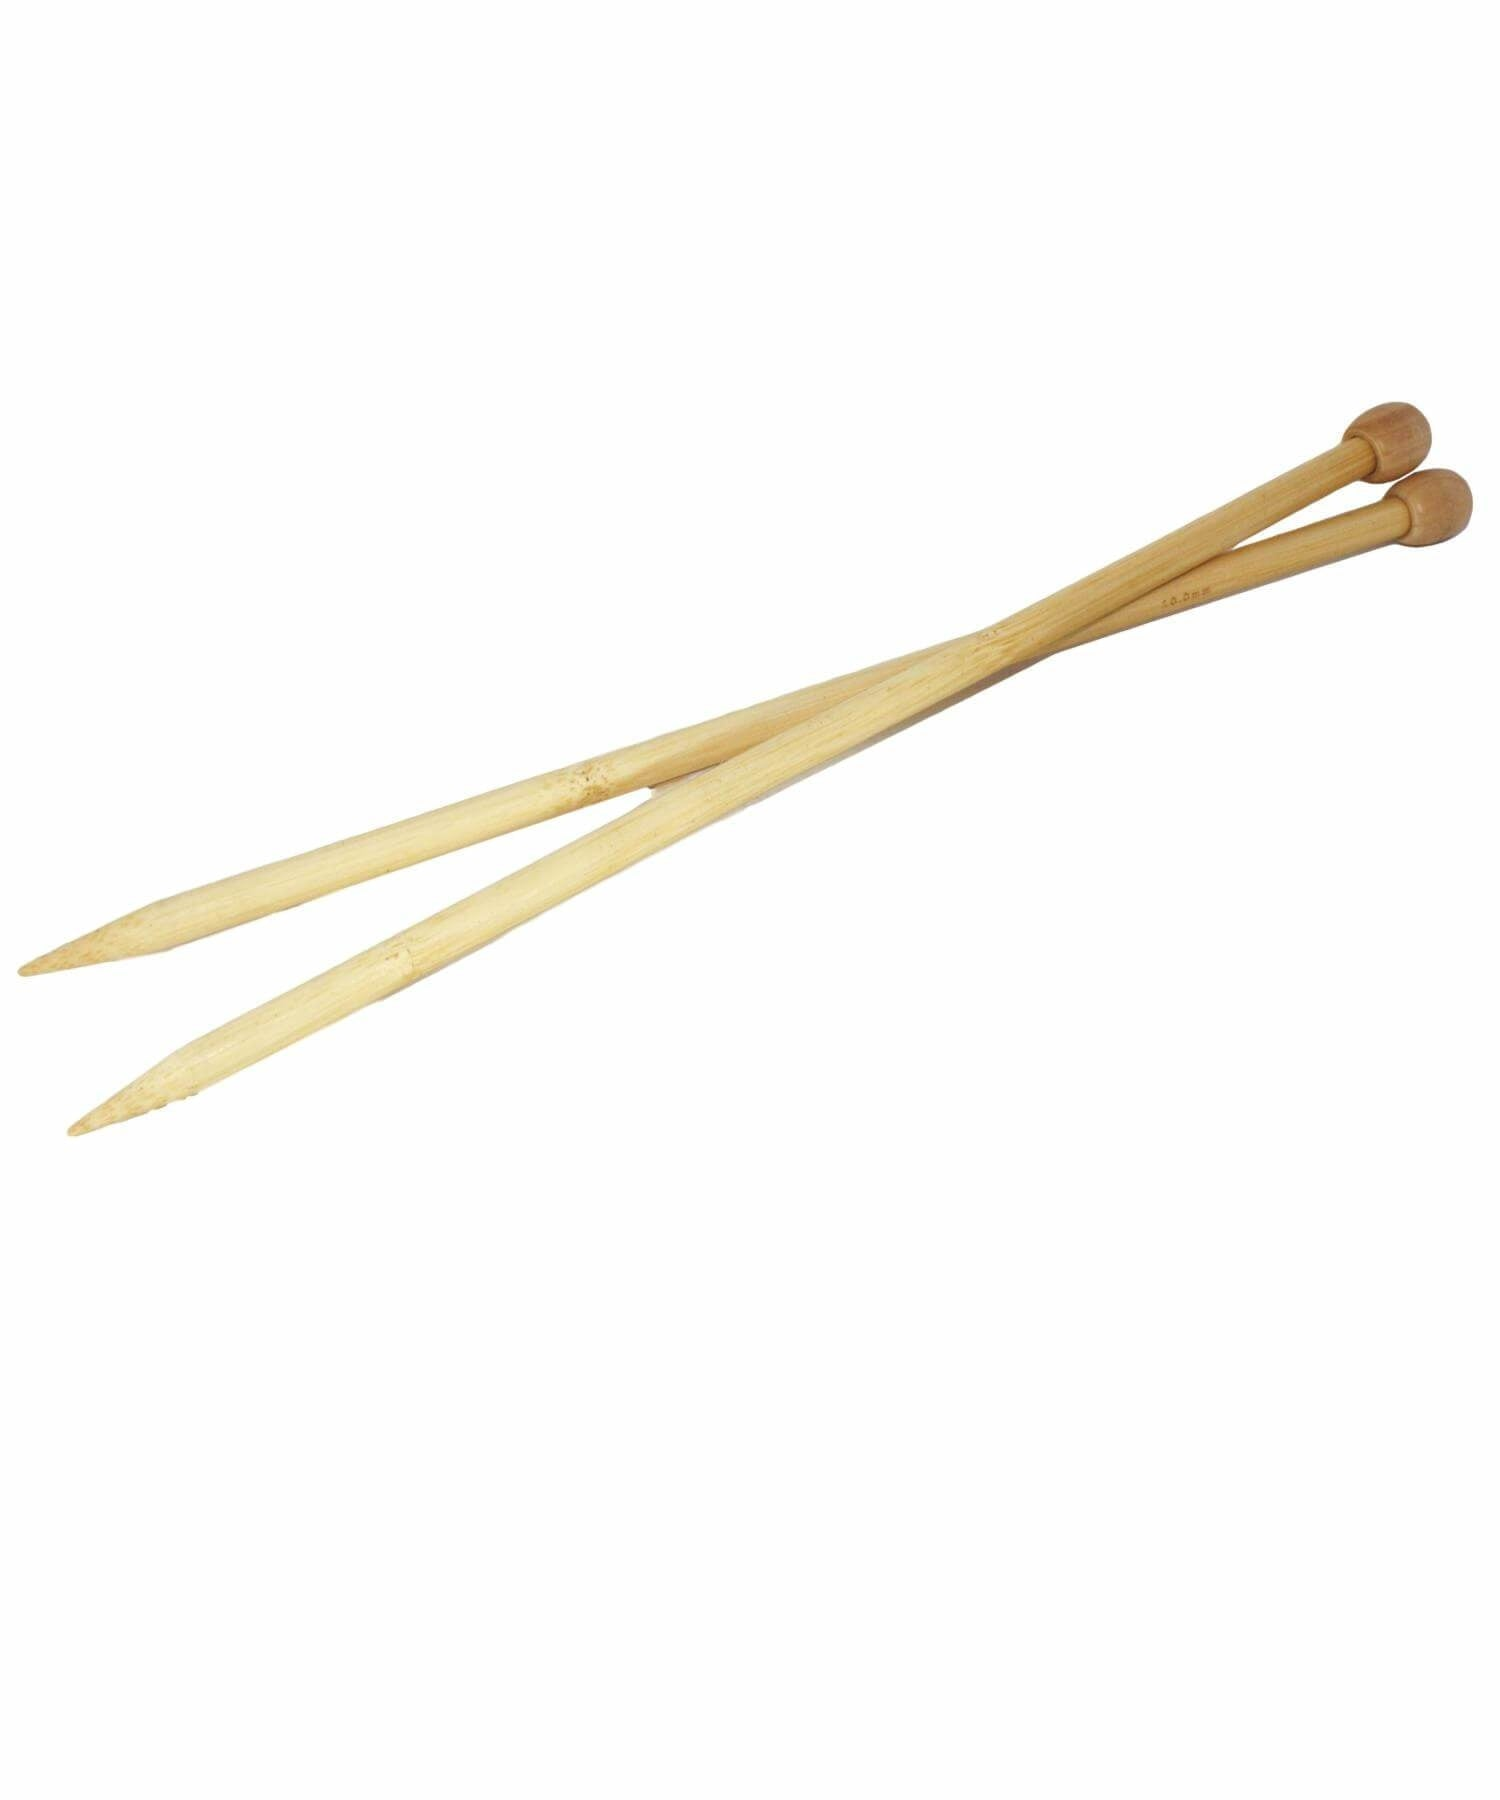 Bamboo Knitting Needles - [Springwools] - Knitting - Irish Gifts